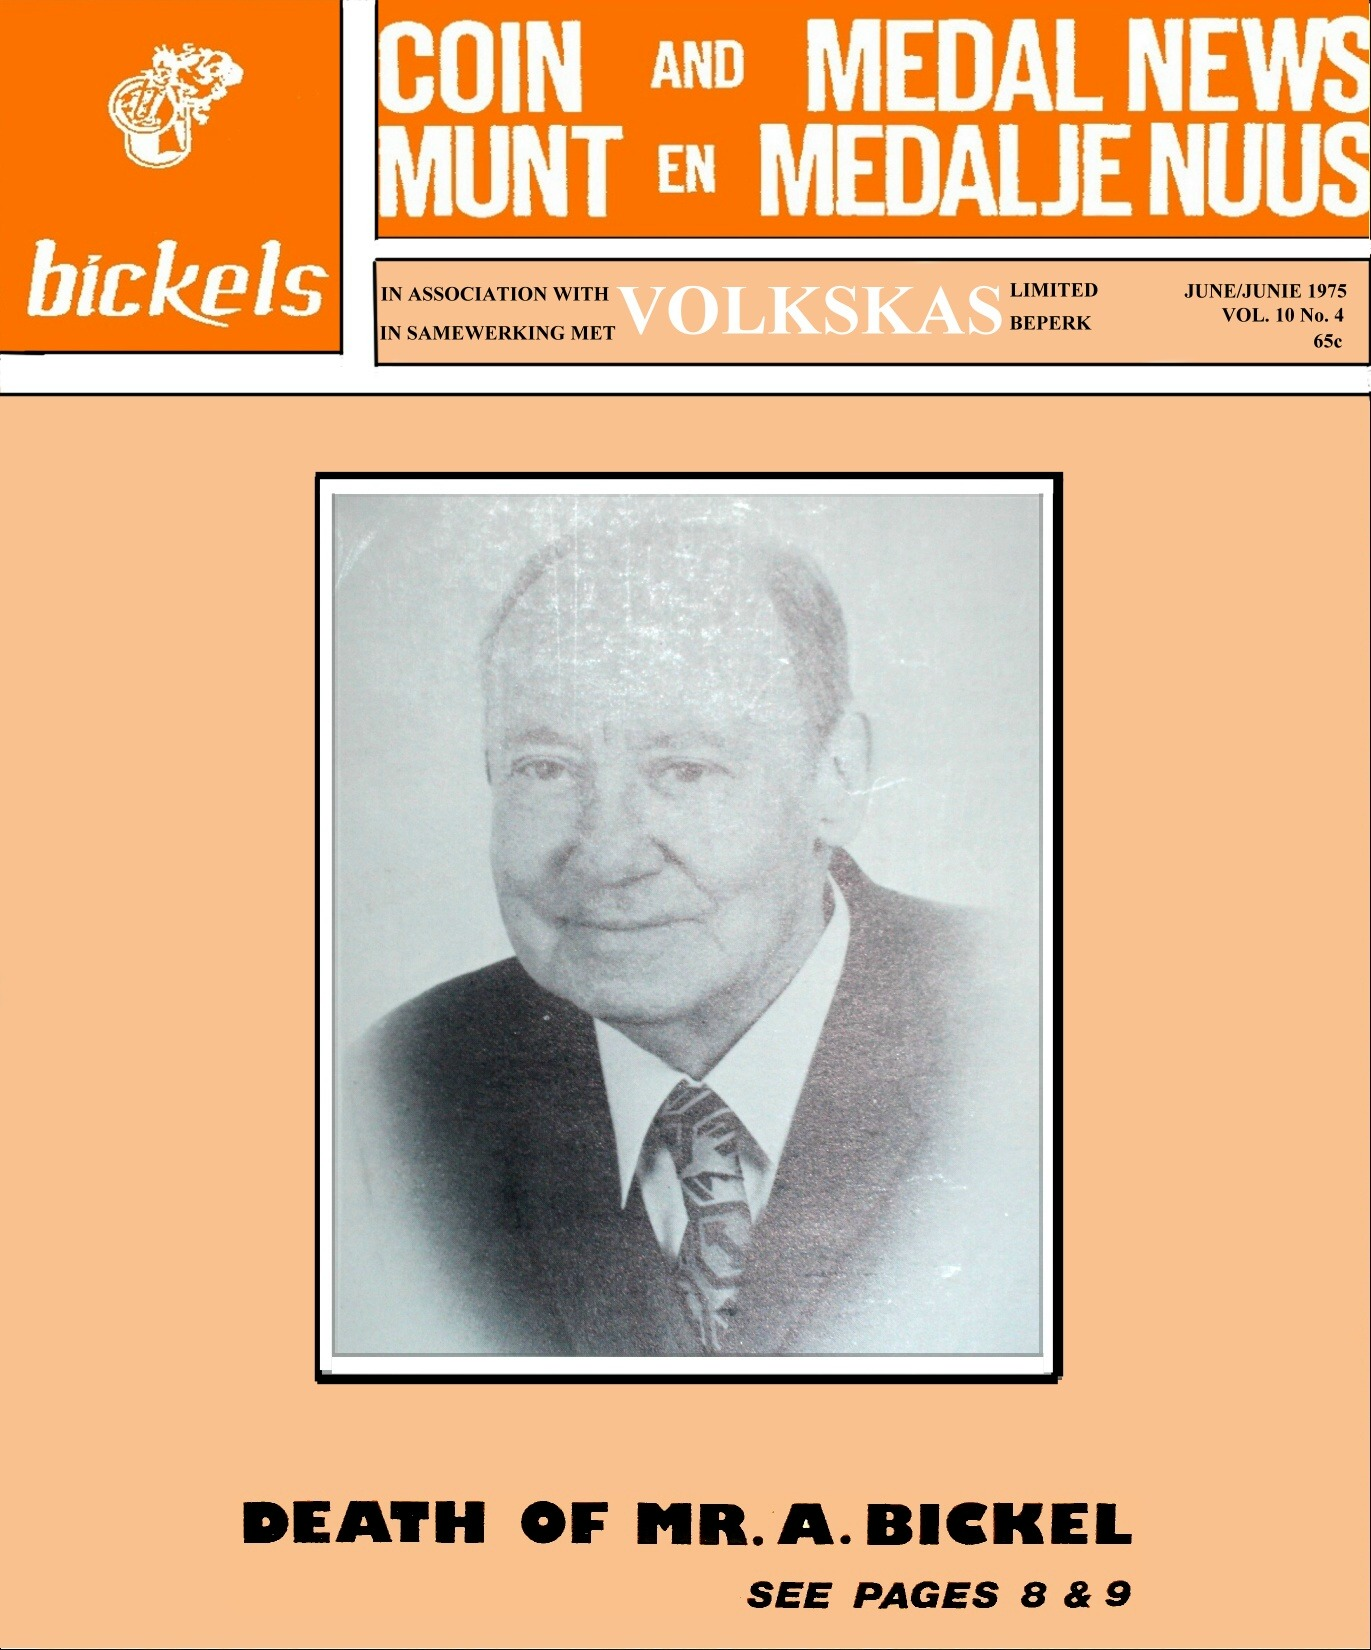 Bickels Coin & Medal News June 1975 Vol 10 No 4